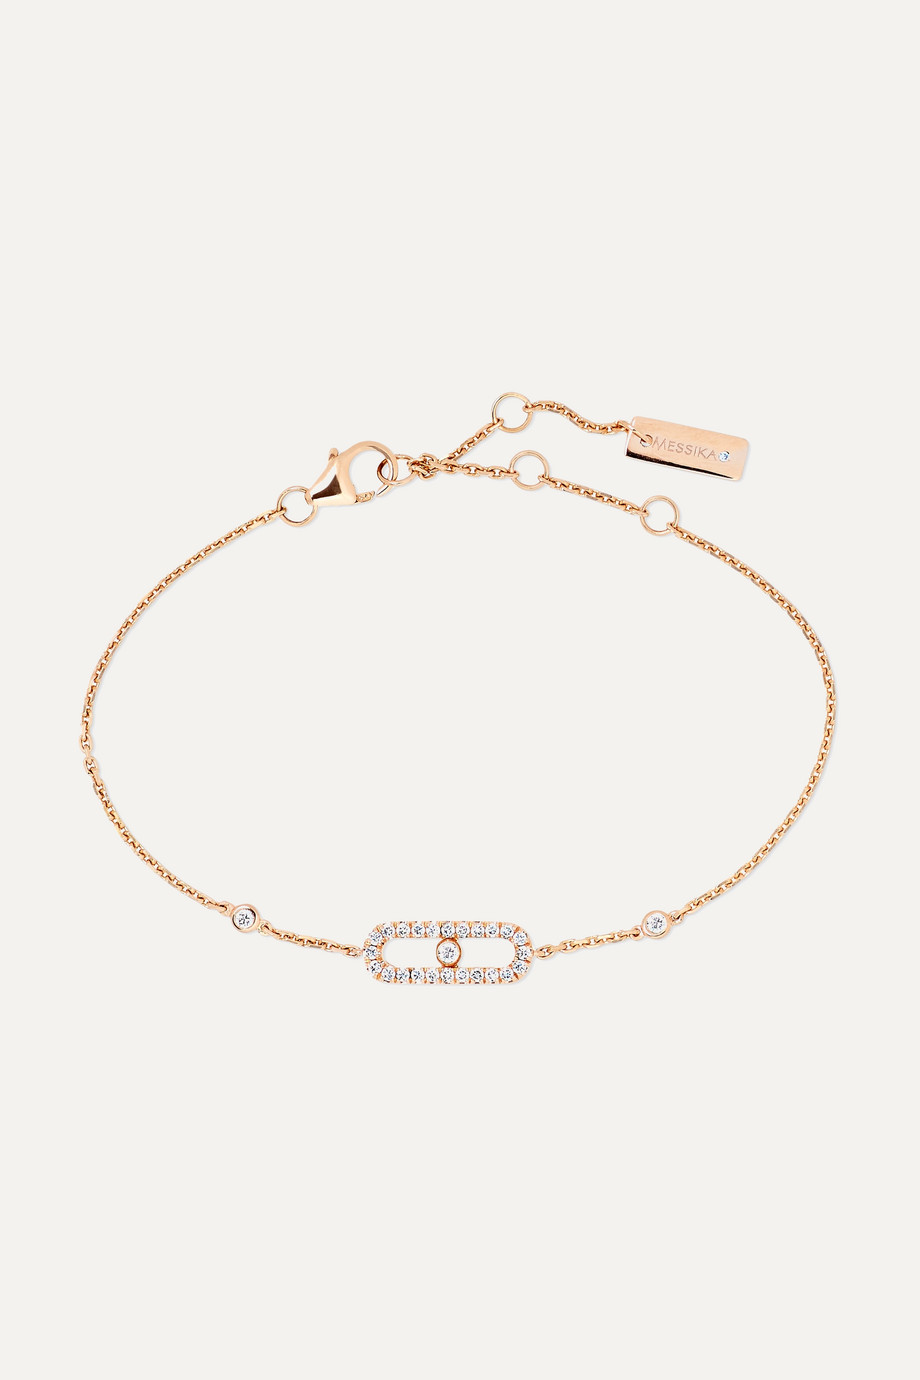 MESSIKA Move Uno 18-karat rose gold diamond bracelet